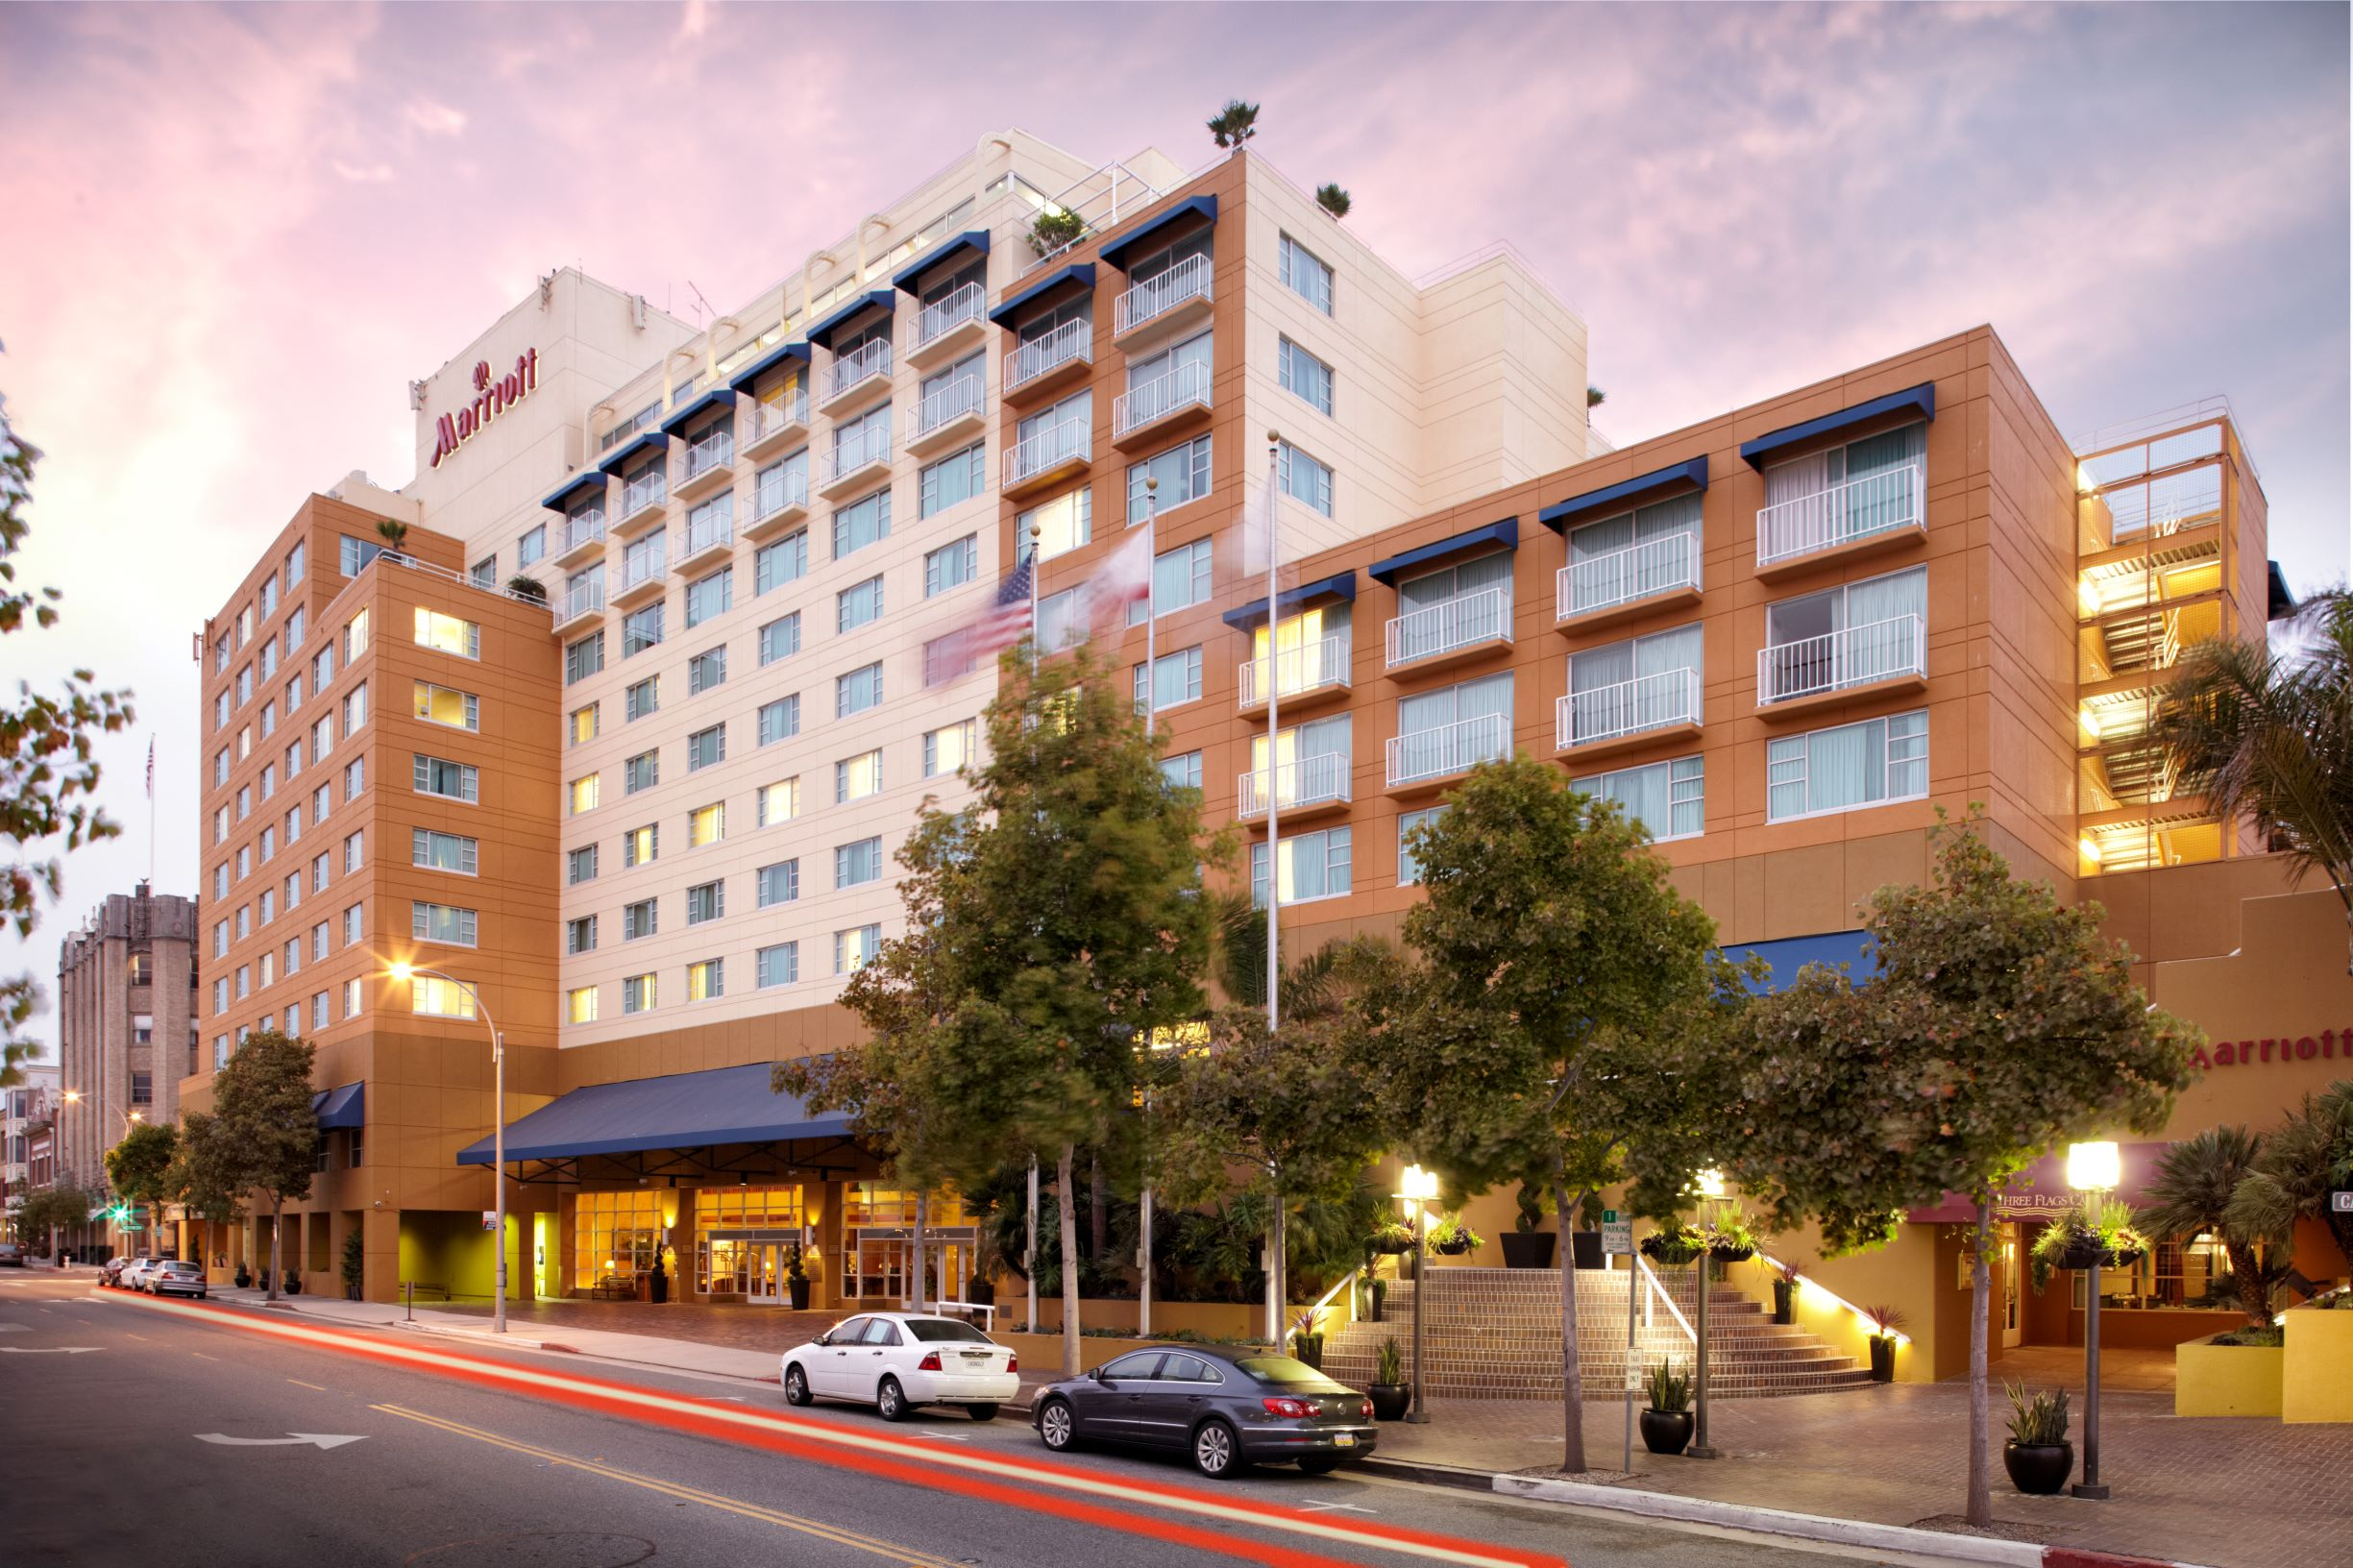 Marriott_Monterey_9-11 866 small.png